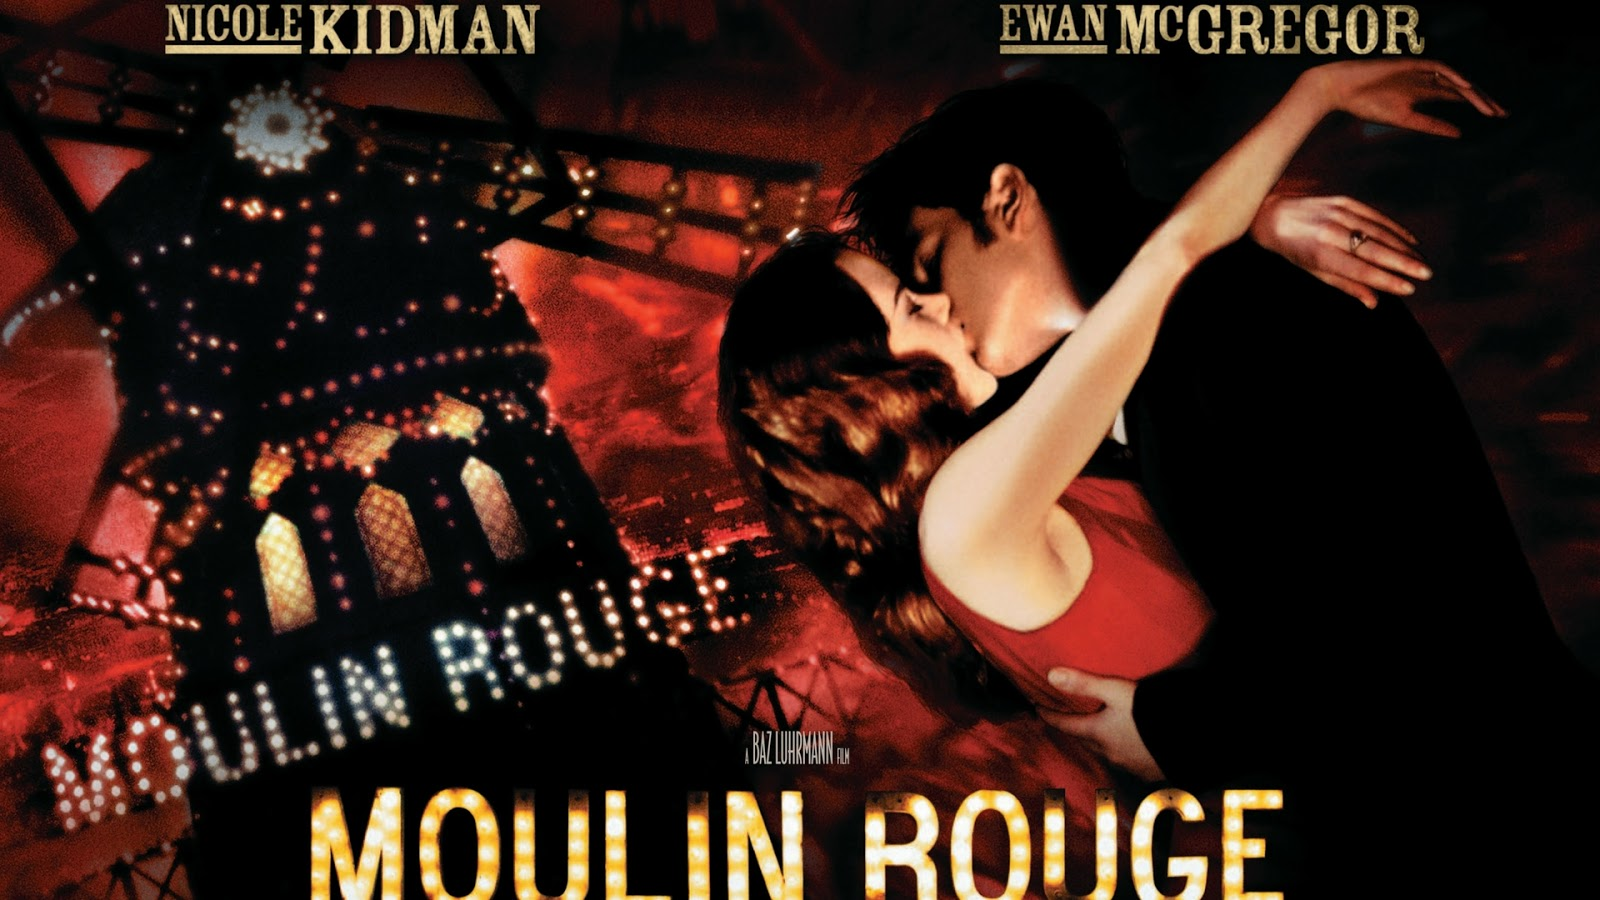 moulin rouge, favourite, panasonice, 4k hd, ewan mcgregor,